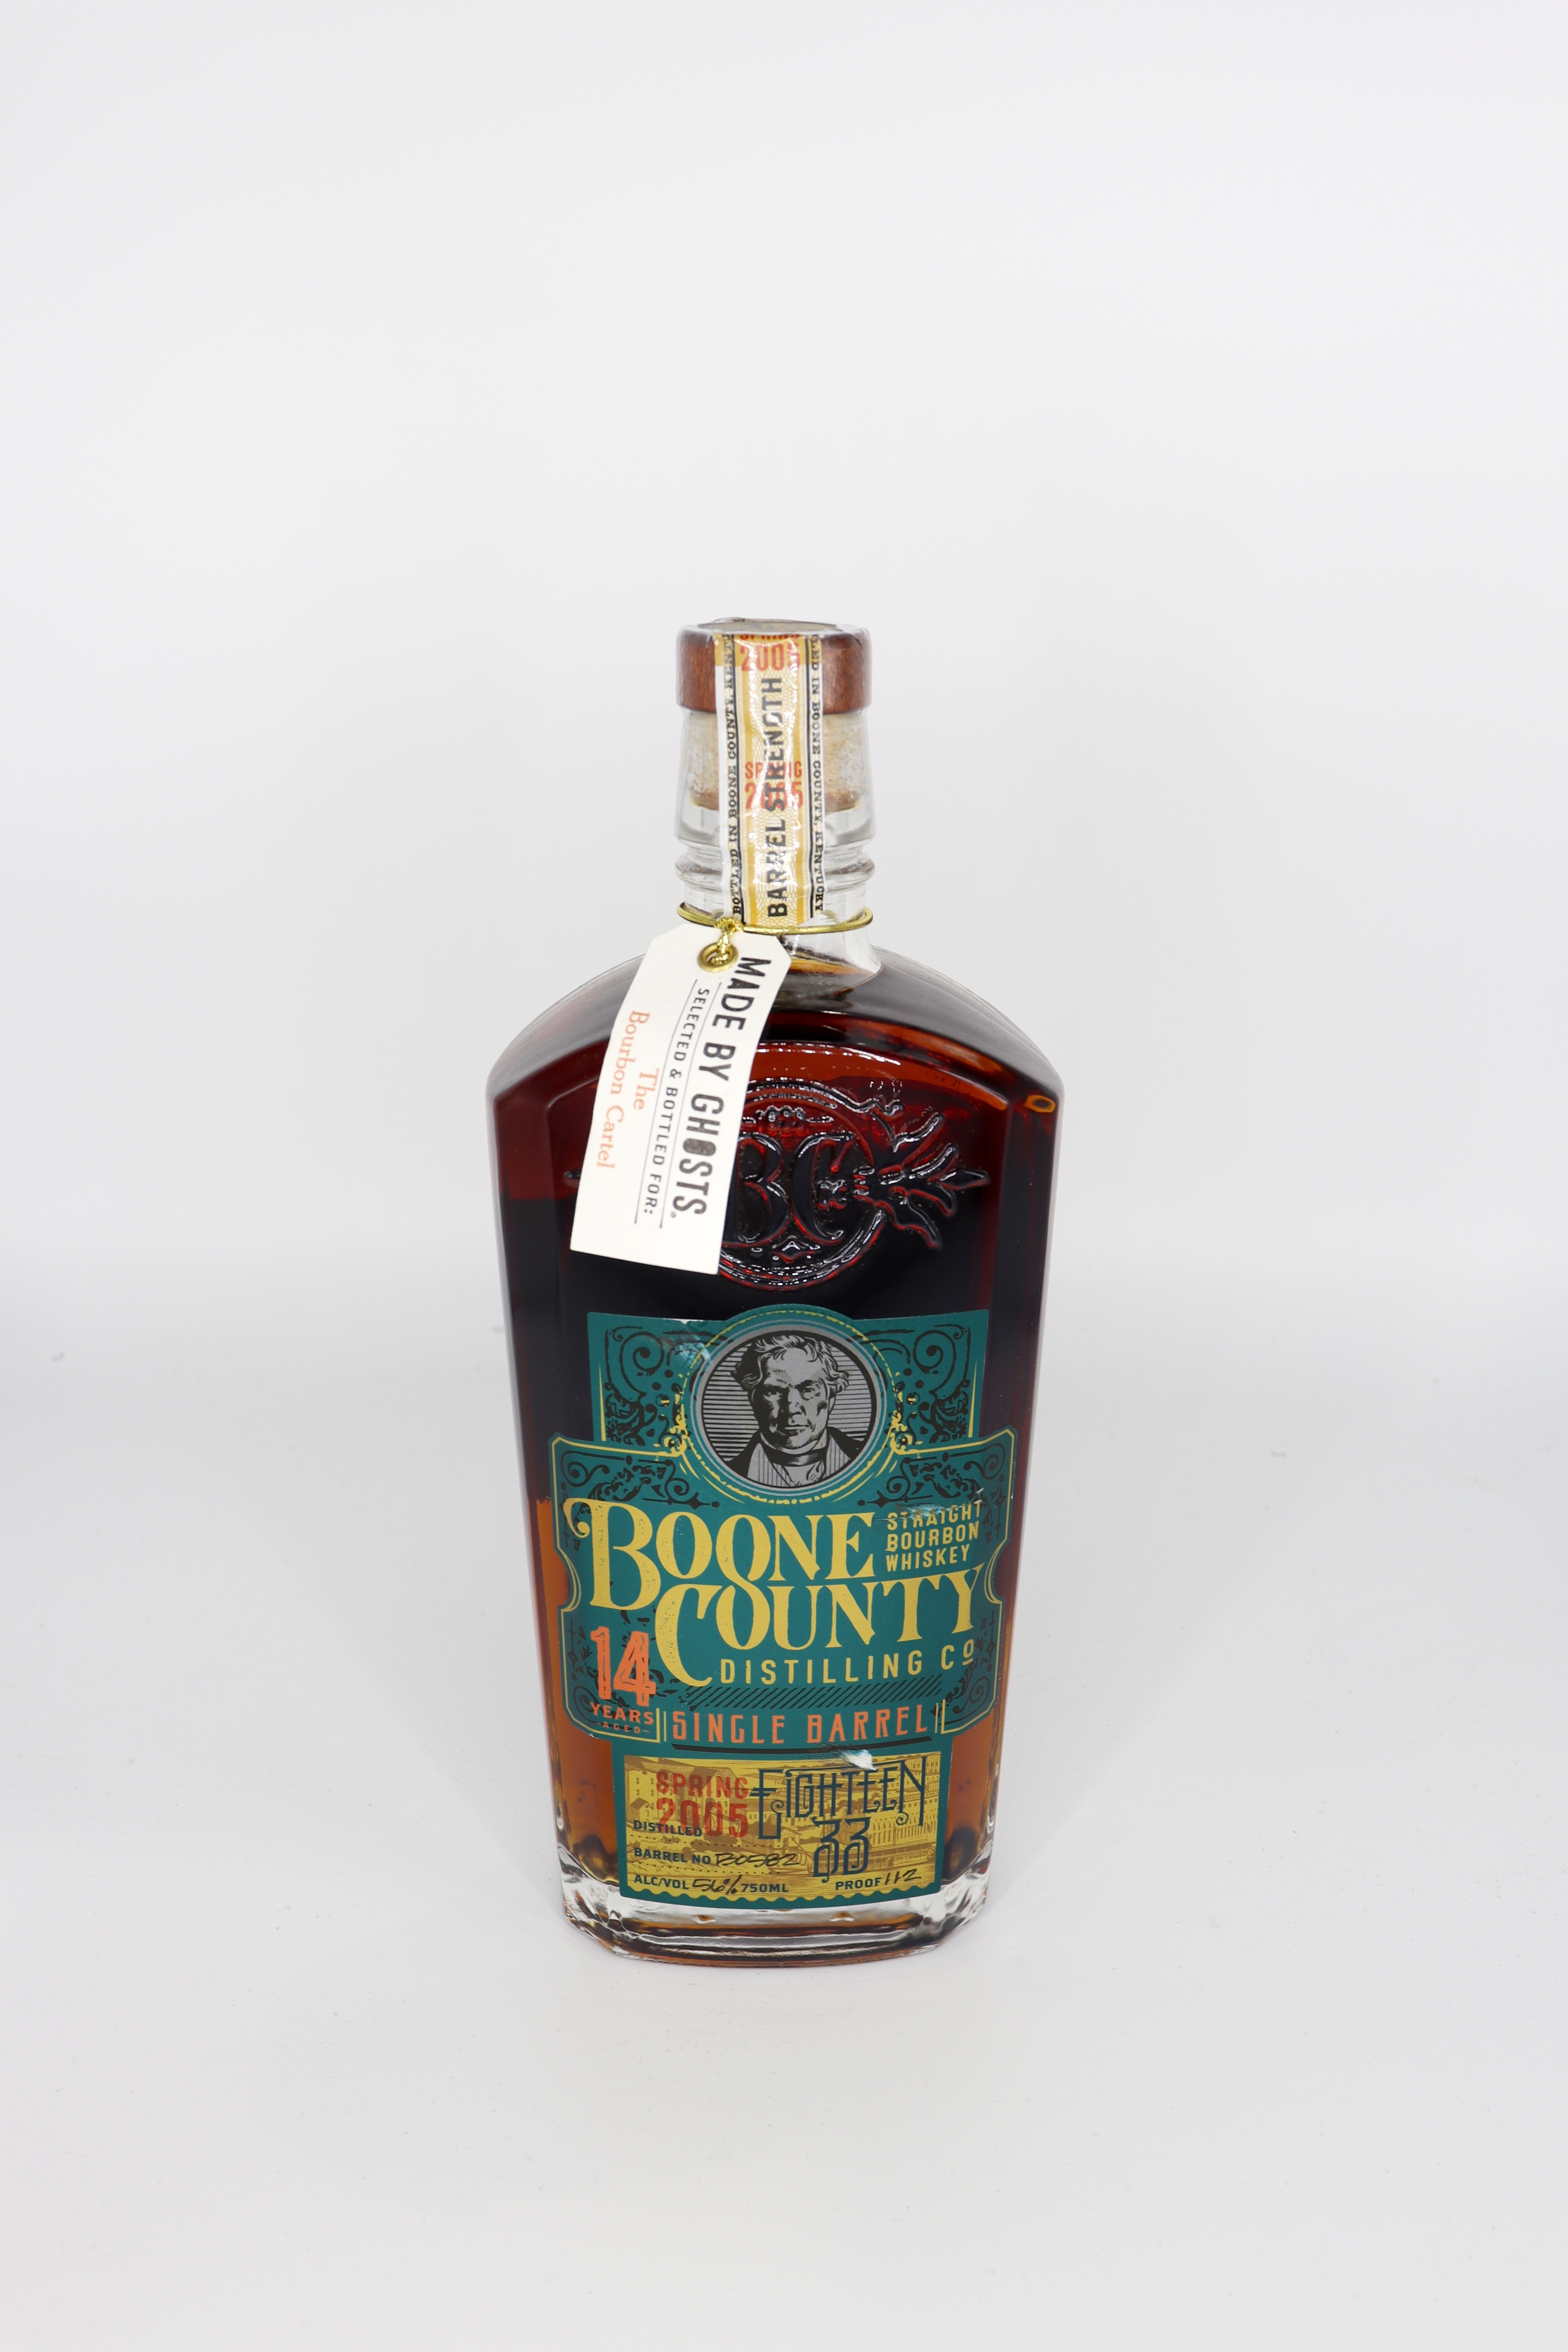 Boone County 14 Year old Single Barrel Barrel strenght Bourbon Made by Ghosts Gordon's Bottling